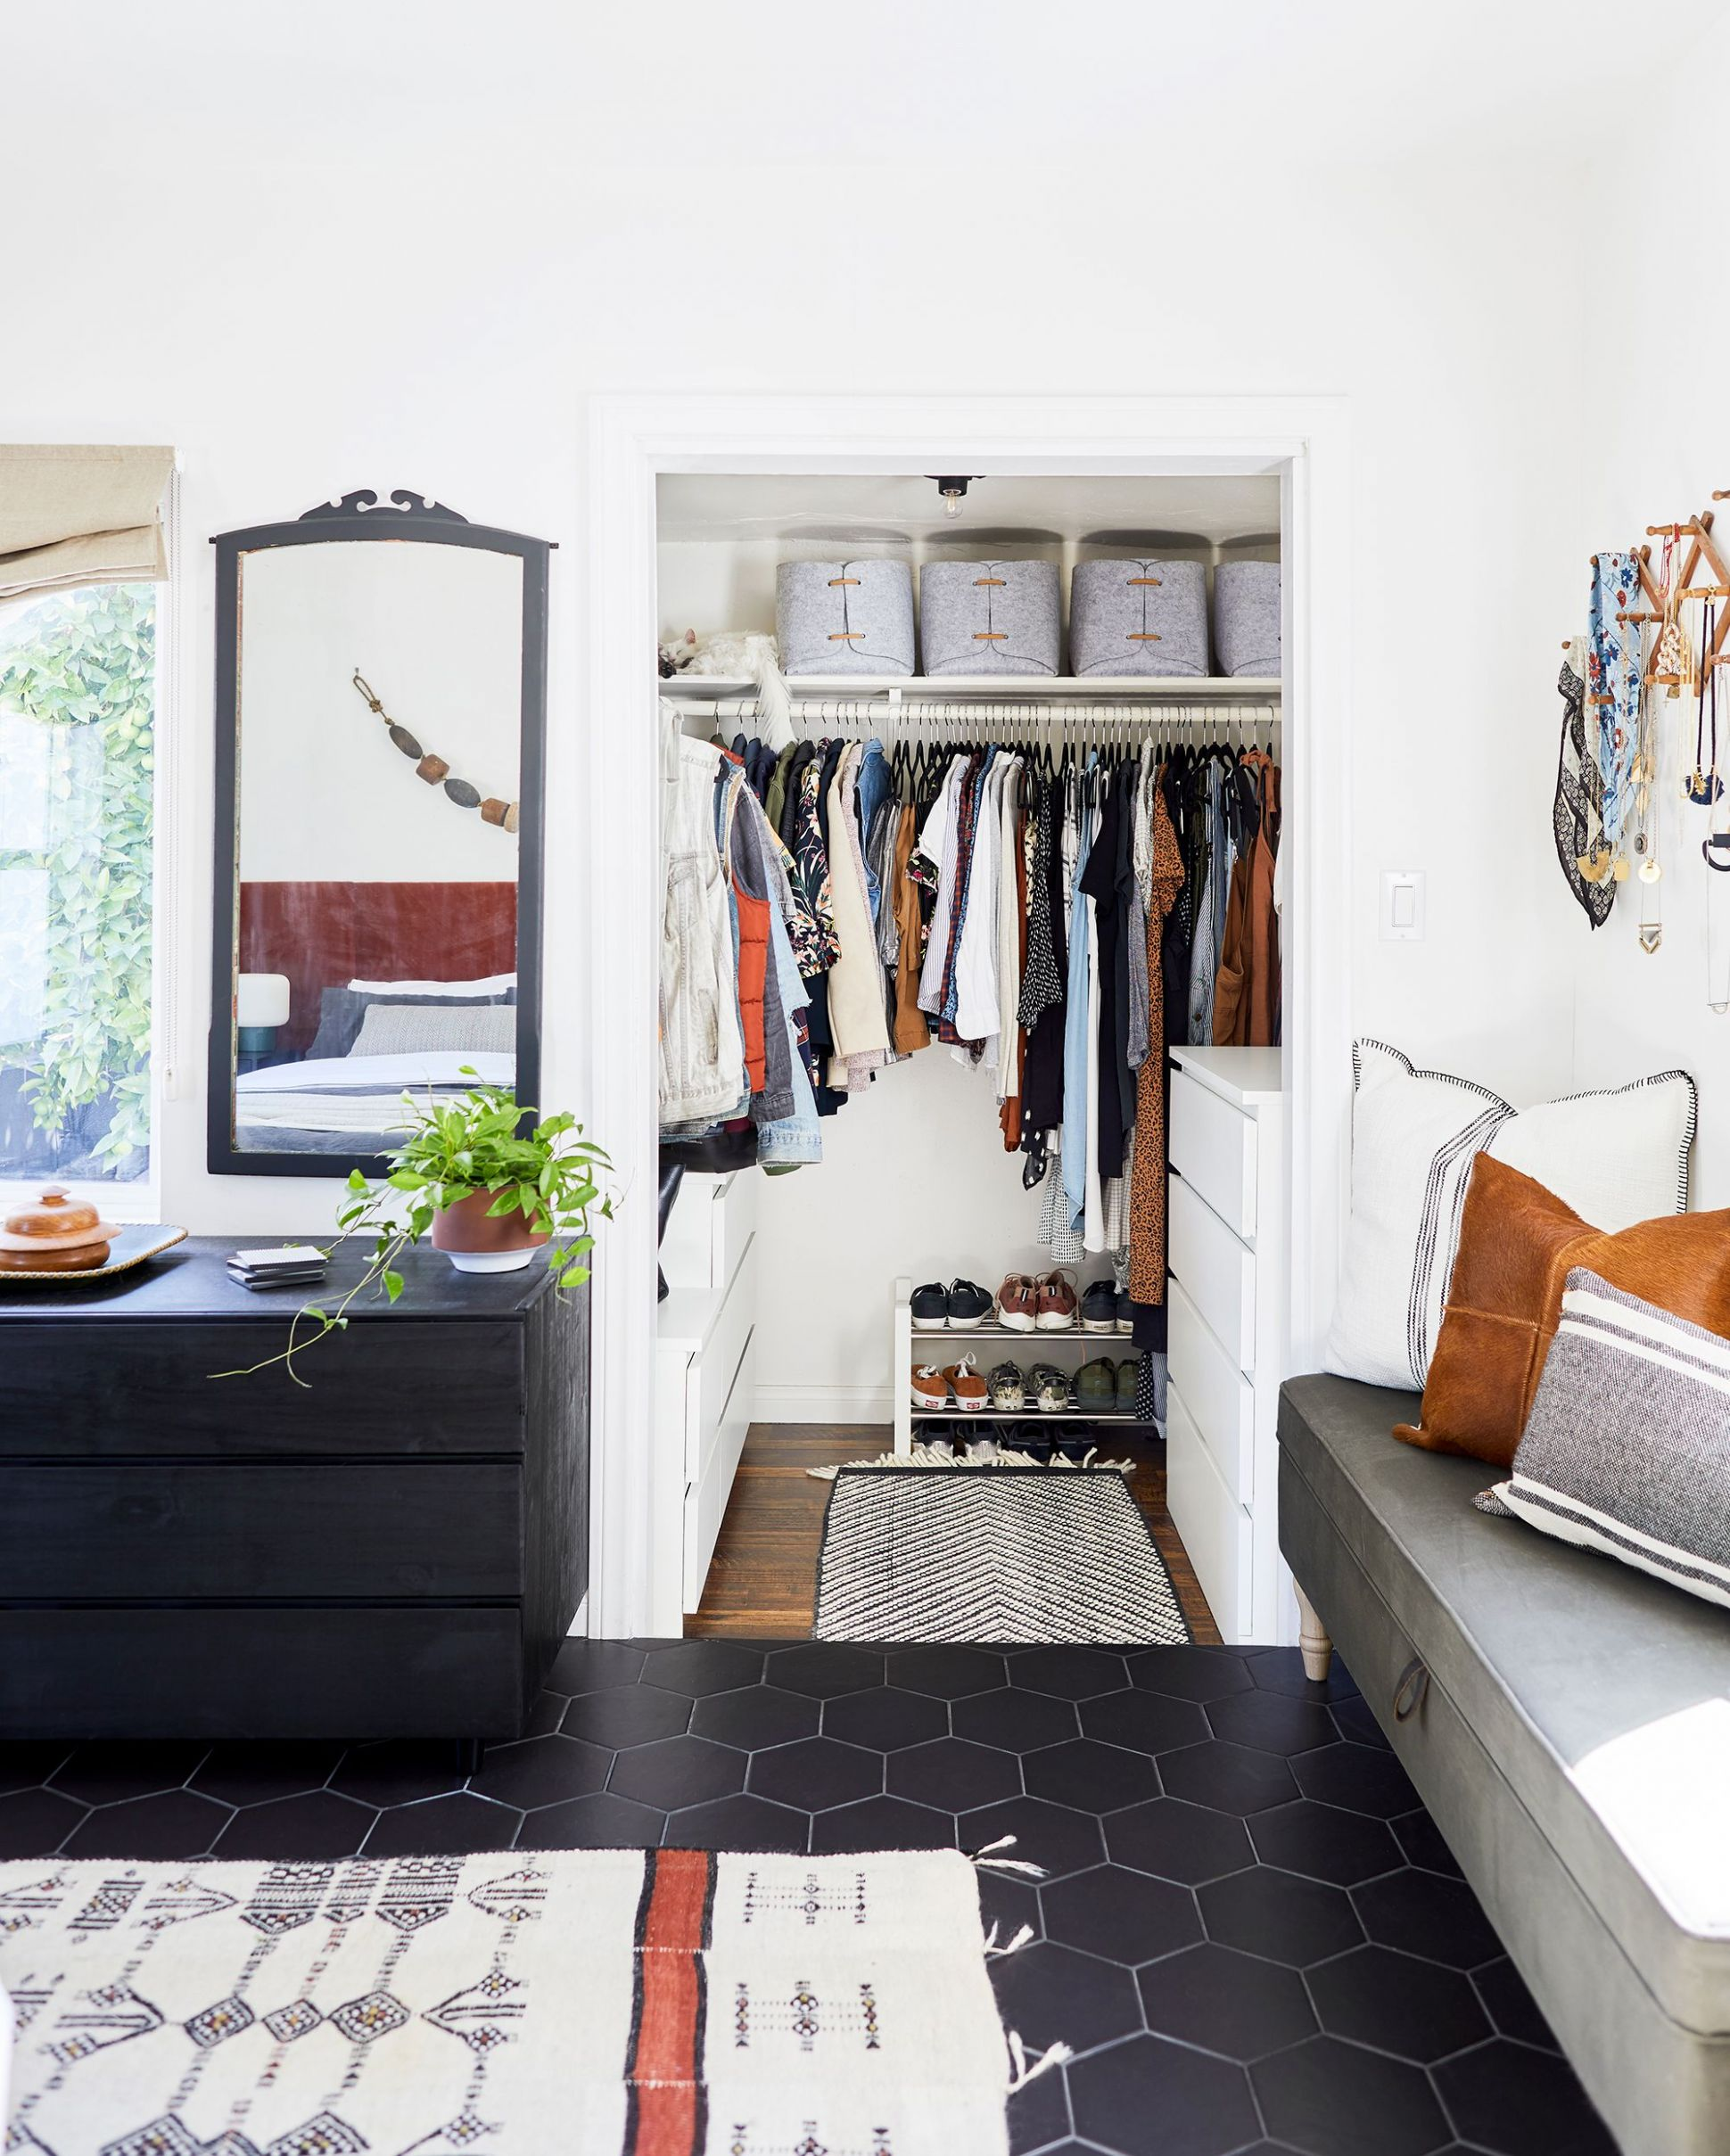 8 Best Small Closet Organization Ideas - Storage Tip for Small ..